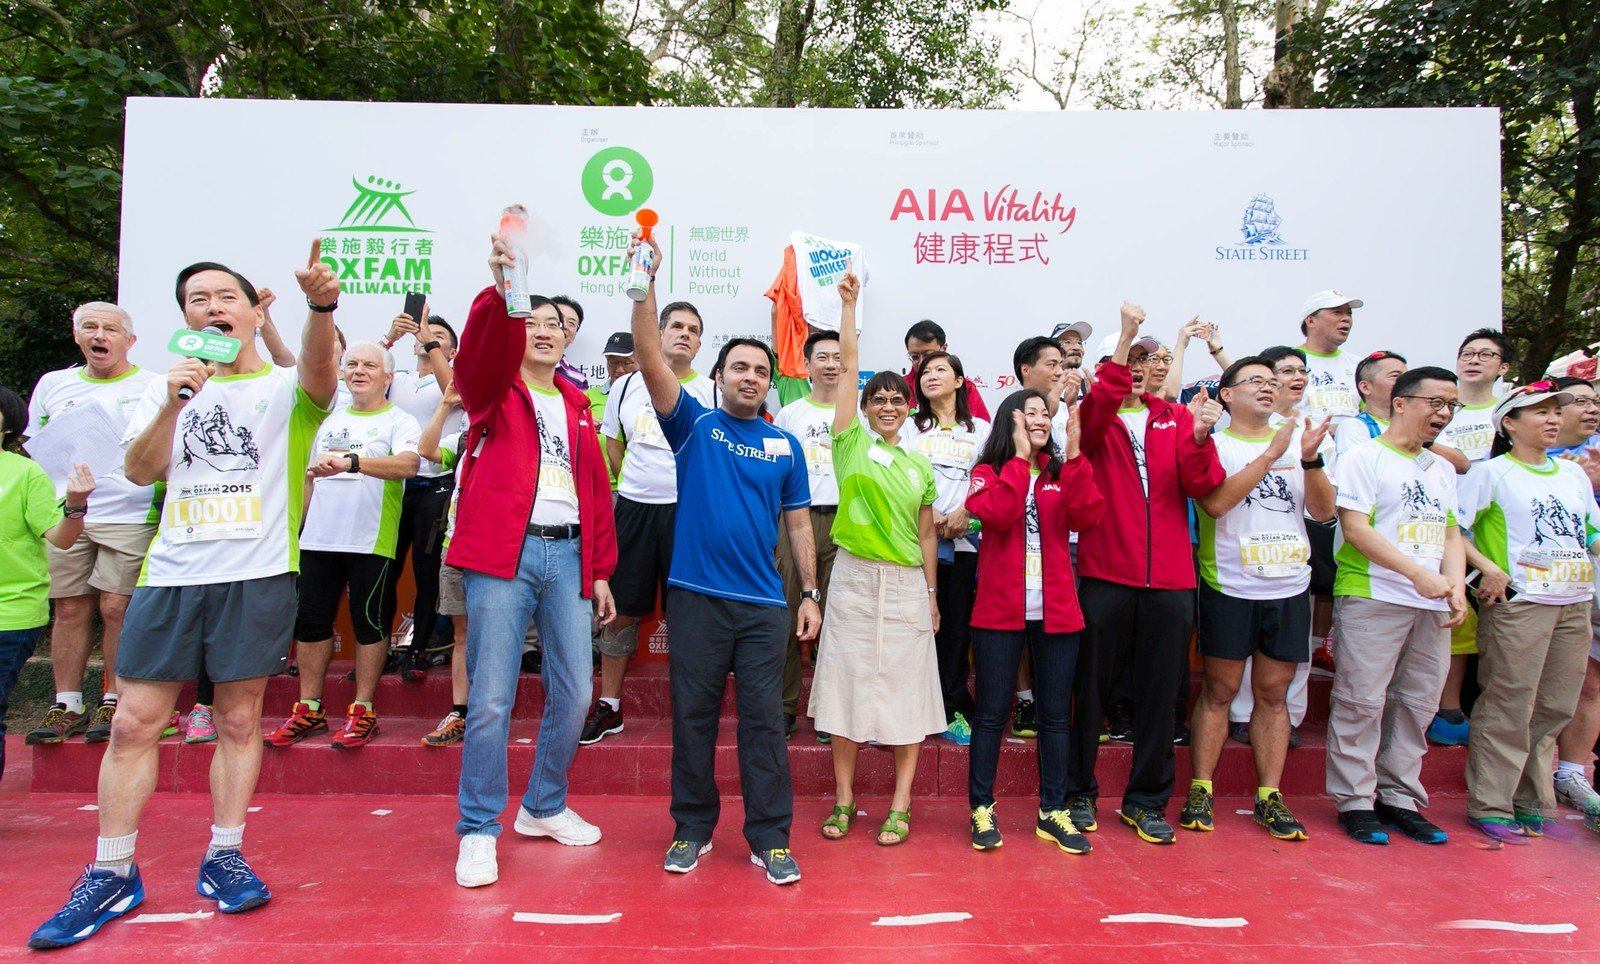 The Oxfam Trailwalker 2015 Kick-Off ceremony was officiated by Bernard Chan (front row first from the left), Oxfam Trailwalker Advisory Committee Chair, Jacky Chan, Chief Executive Officer, AIA Hong Kong and Macau, Principal Sponsor of Oxfam Trailwalker 2015, Syed Asim Hasan, Senior Vice President, State Street, and Trini Leung, Director General of Oxfam Hong Kong.